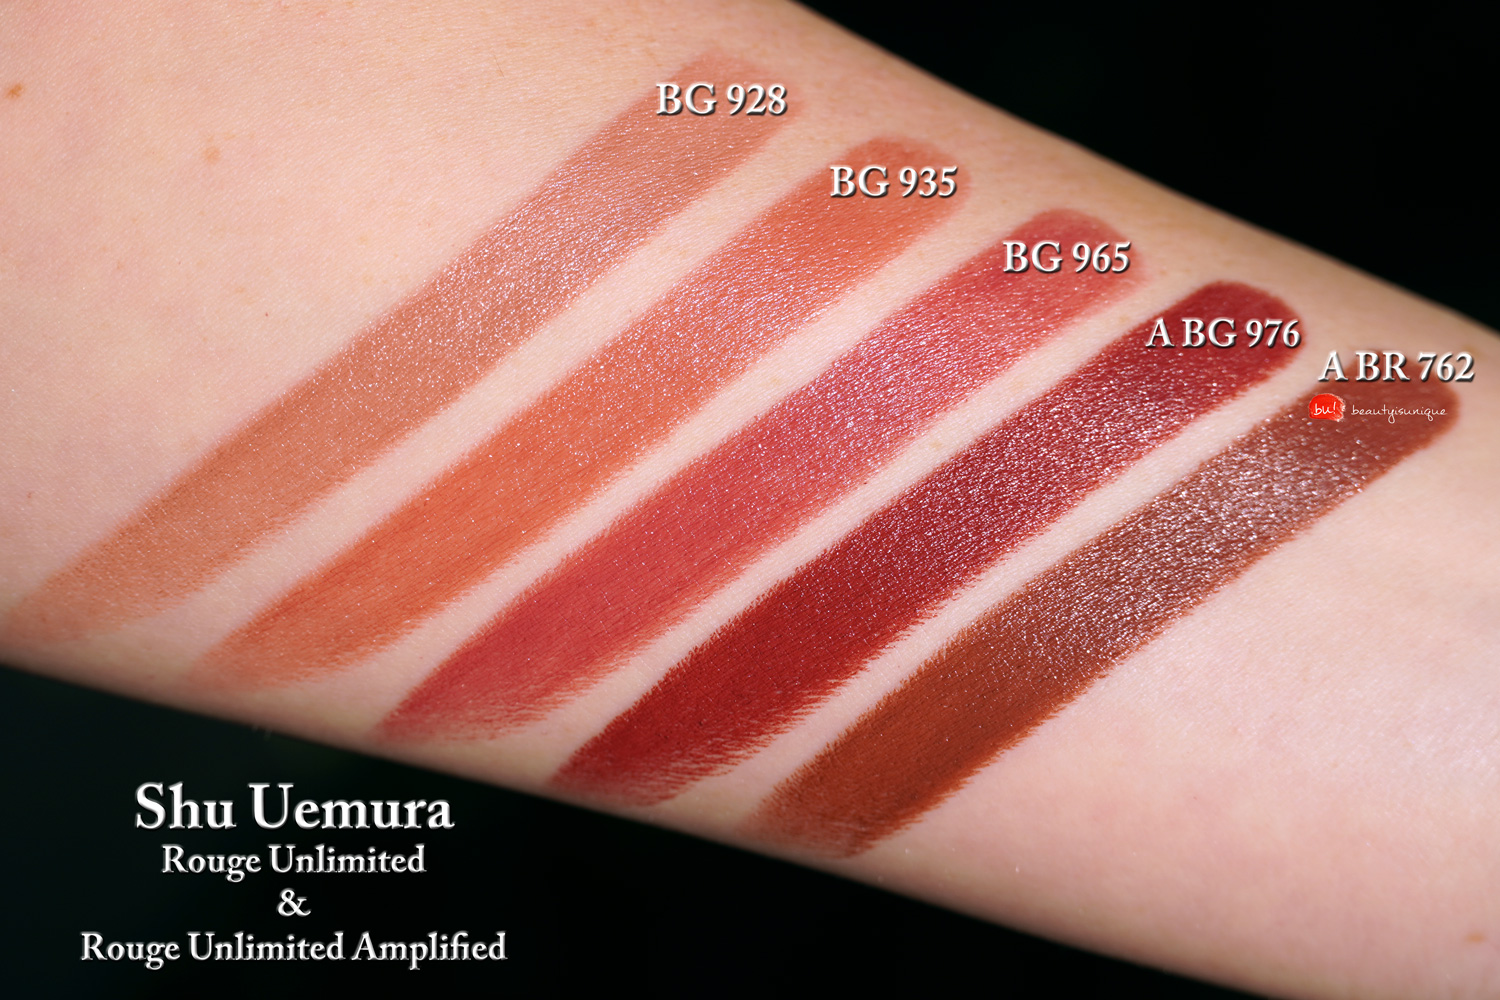 shu-uemura-rouge-unlimited-amplified-swatches